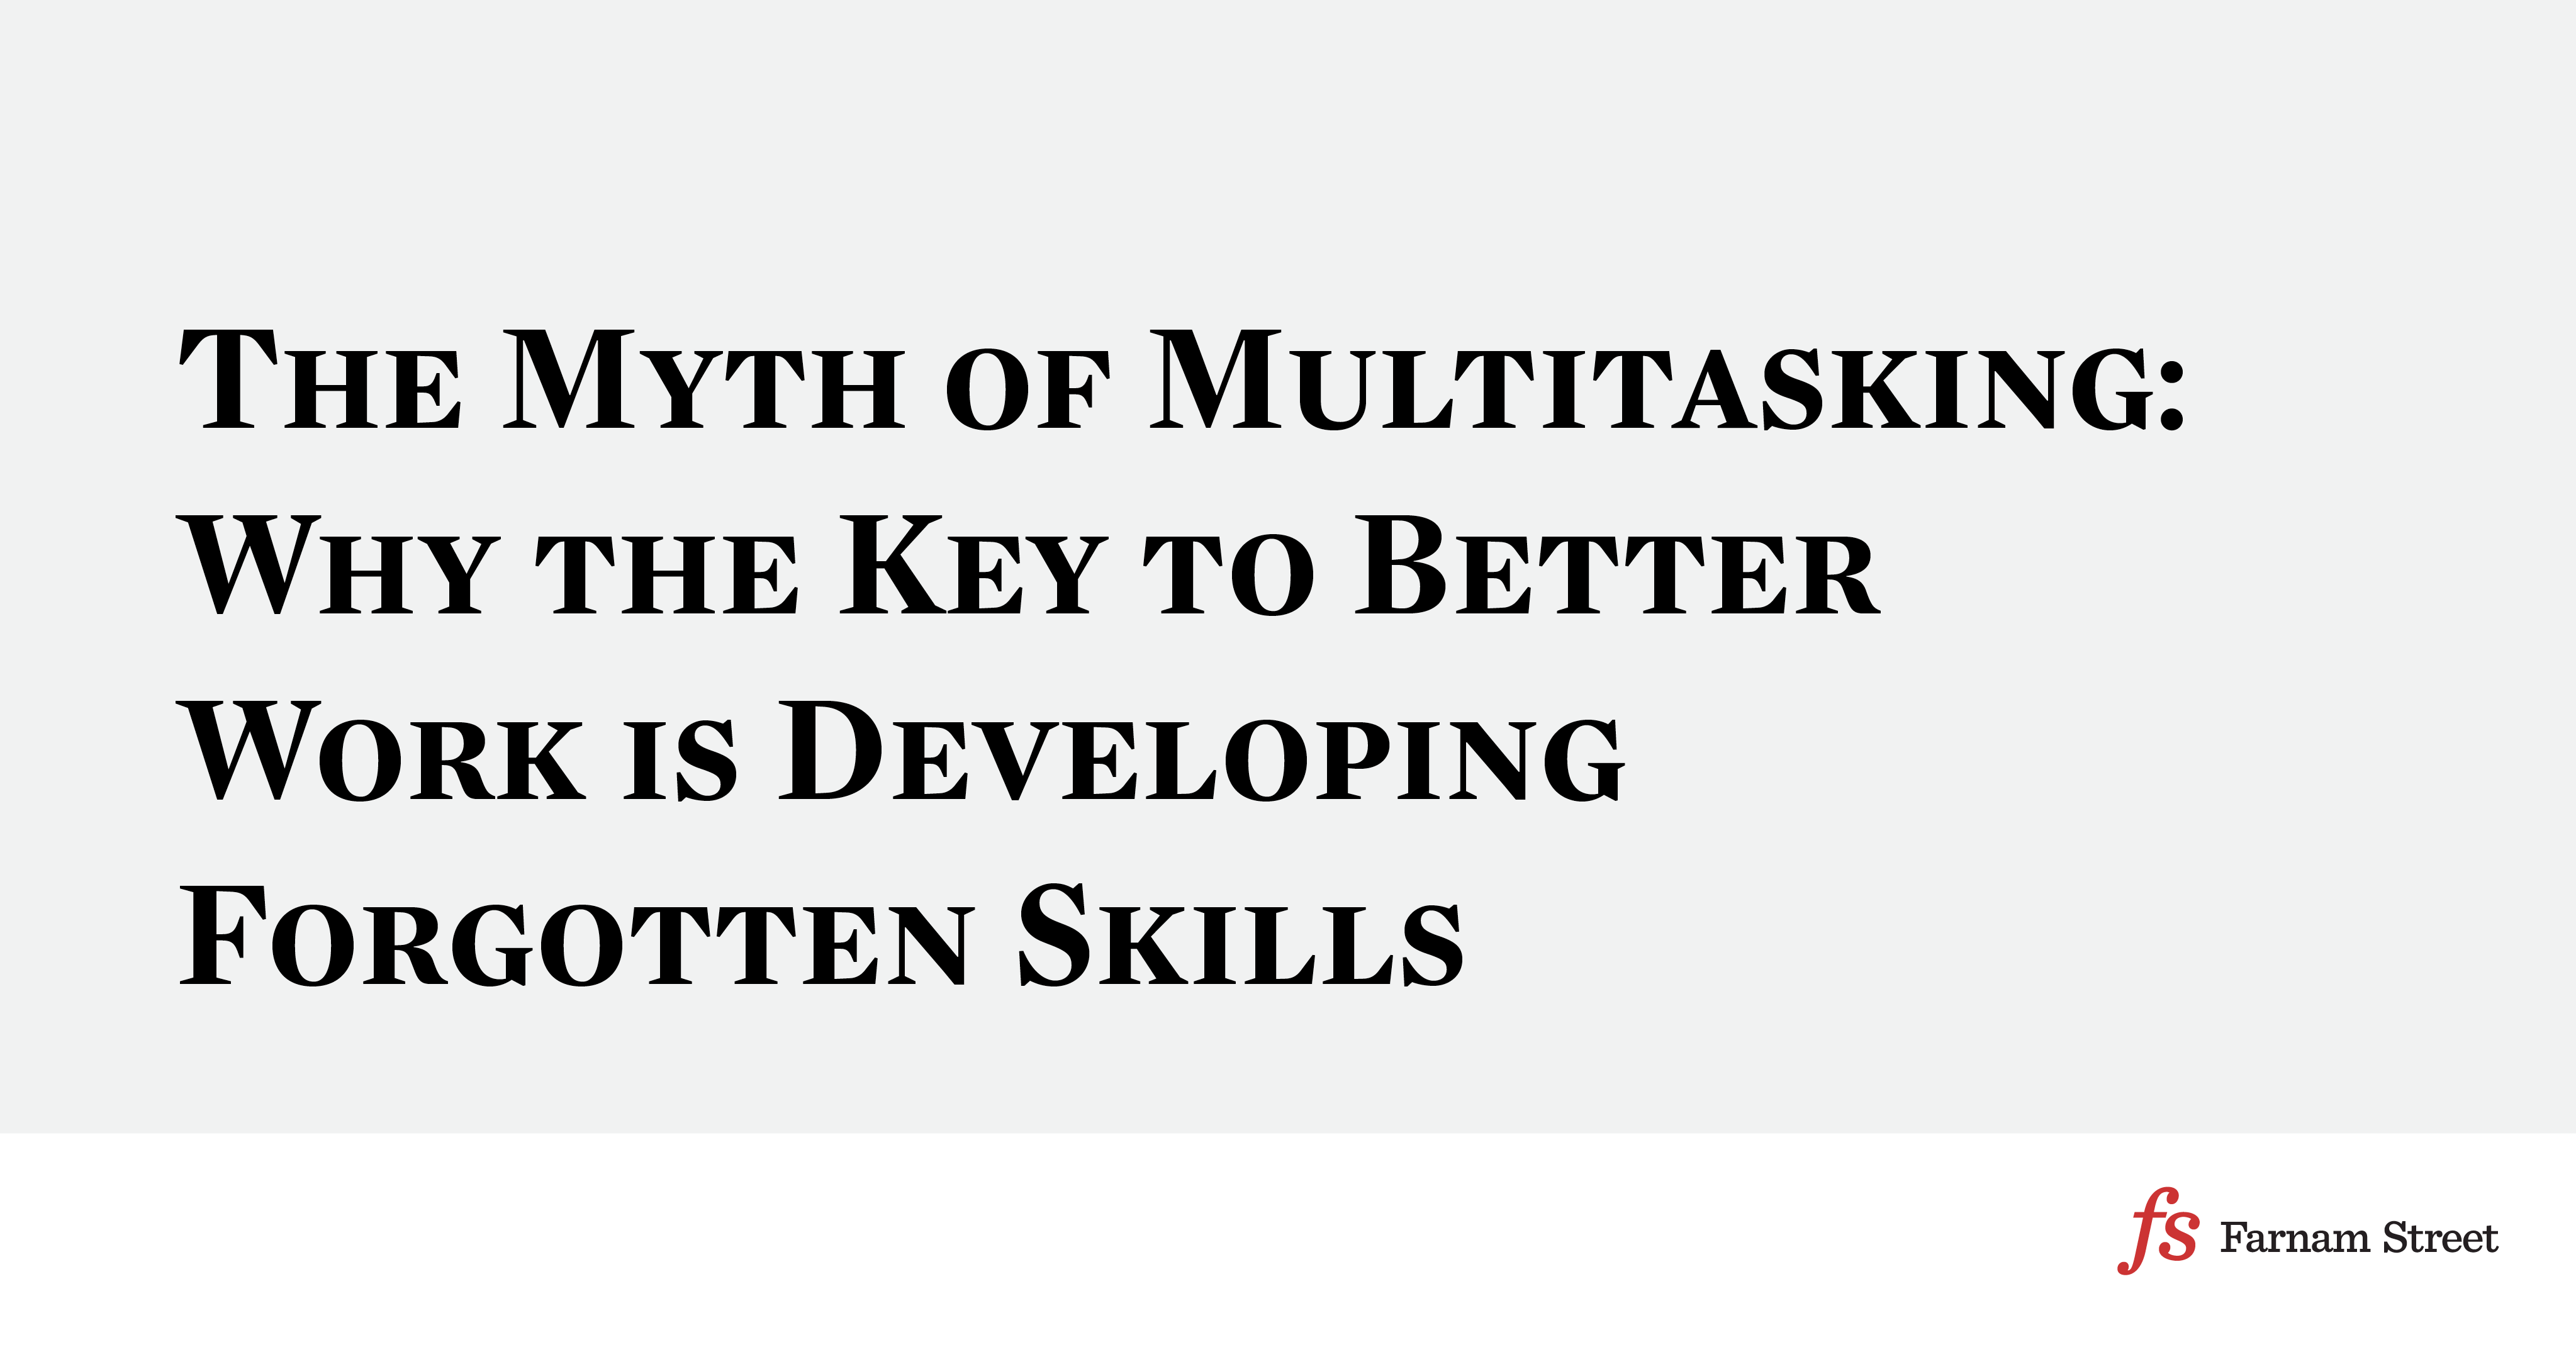 the myth of multitasking The great multitasking lie many people think they are good multitaskers, but that is actually a myth, especially when it comes to cell phone use while driving.